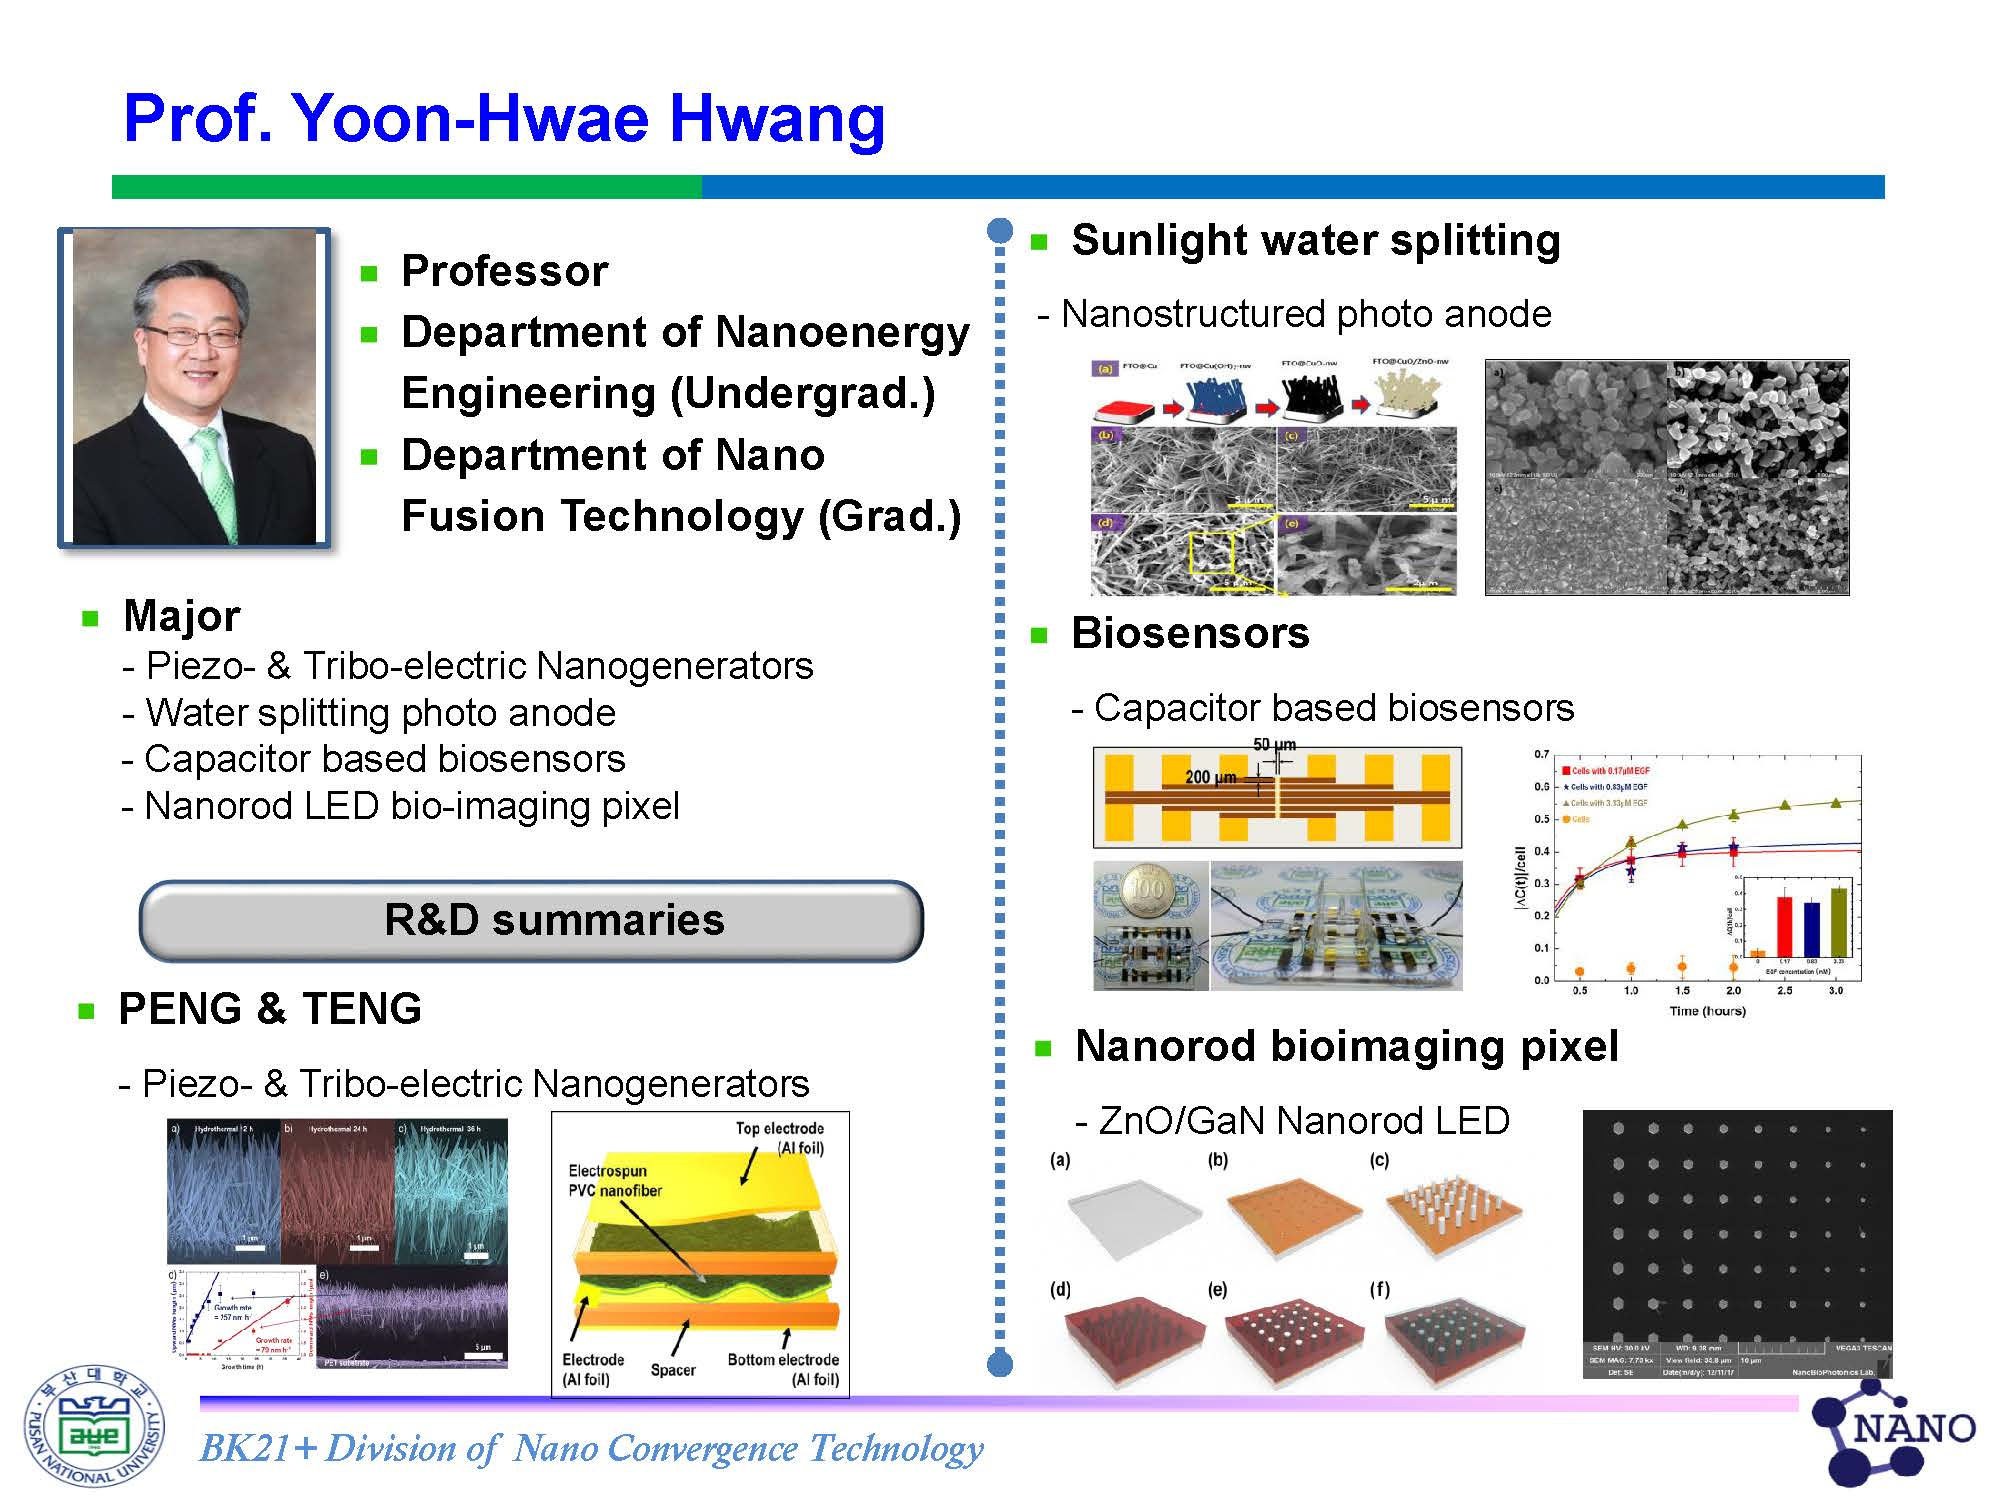 Hwang, Yoon-Hwae Nanoenergy Department_research fields_페이지_2.jpg